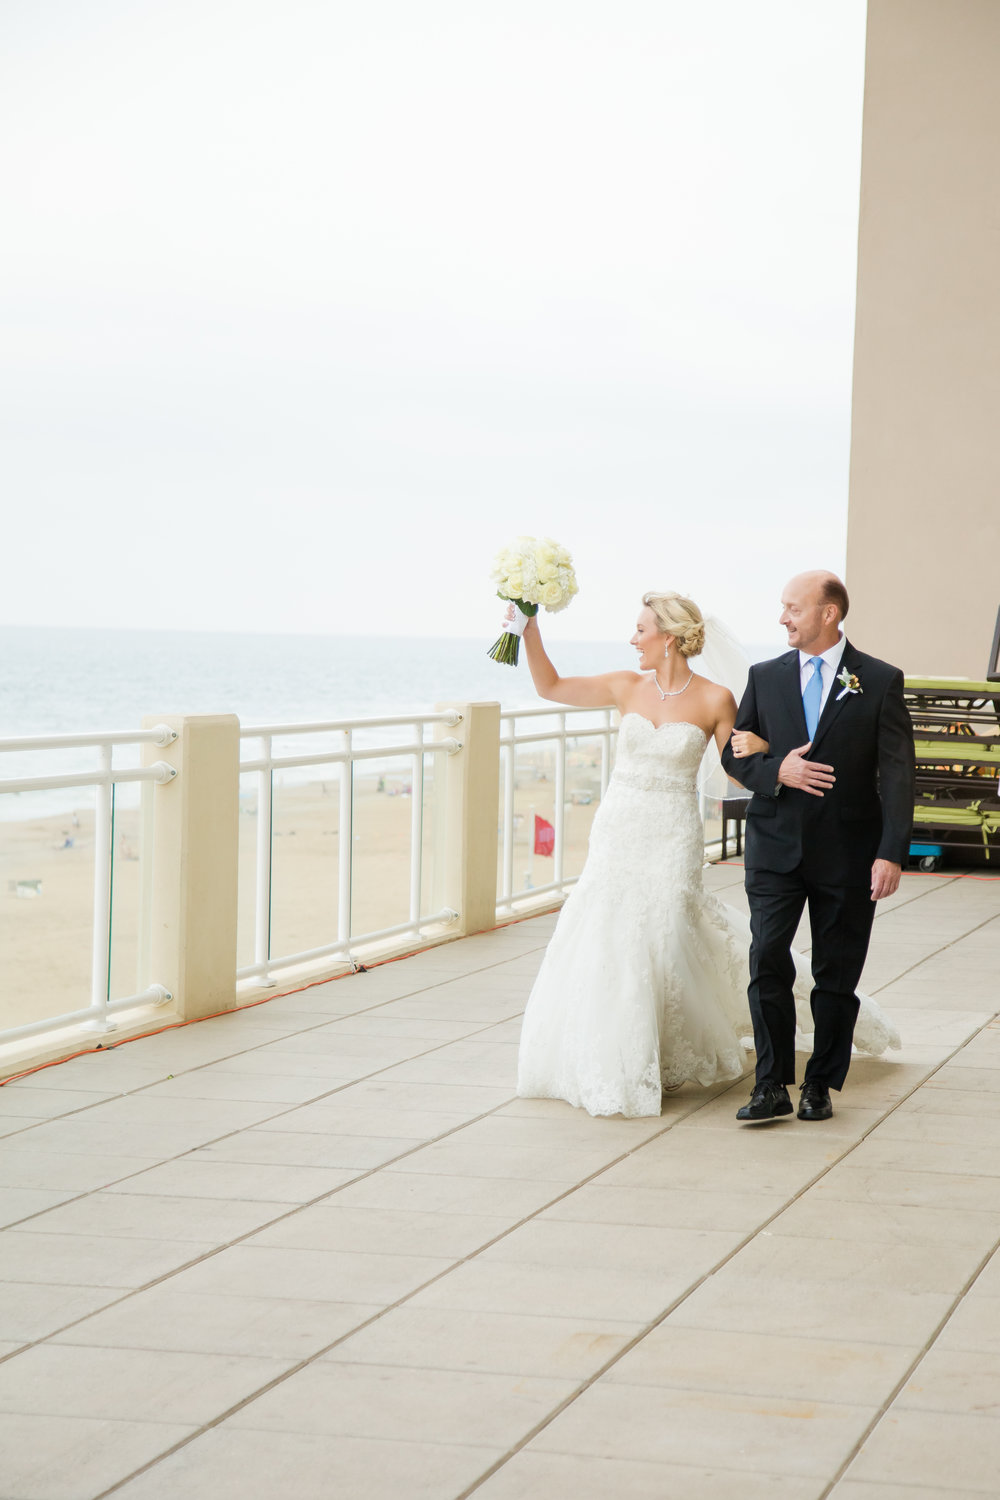 Downing_wedding_RachaelReidPhotography_-325.jpg